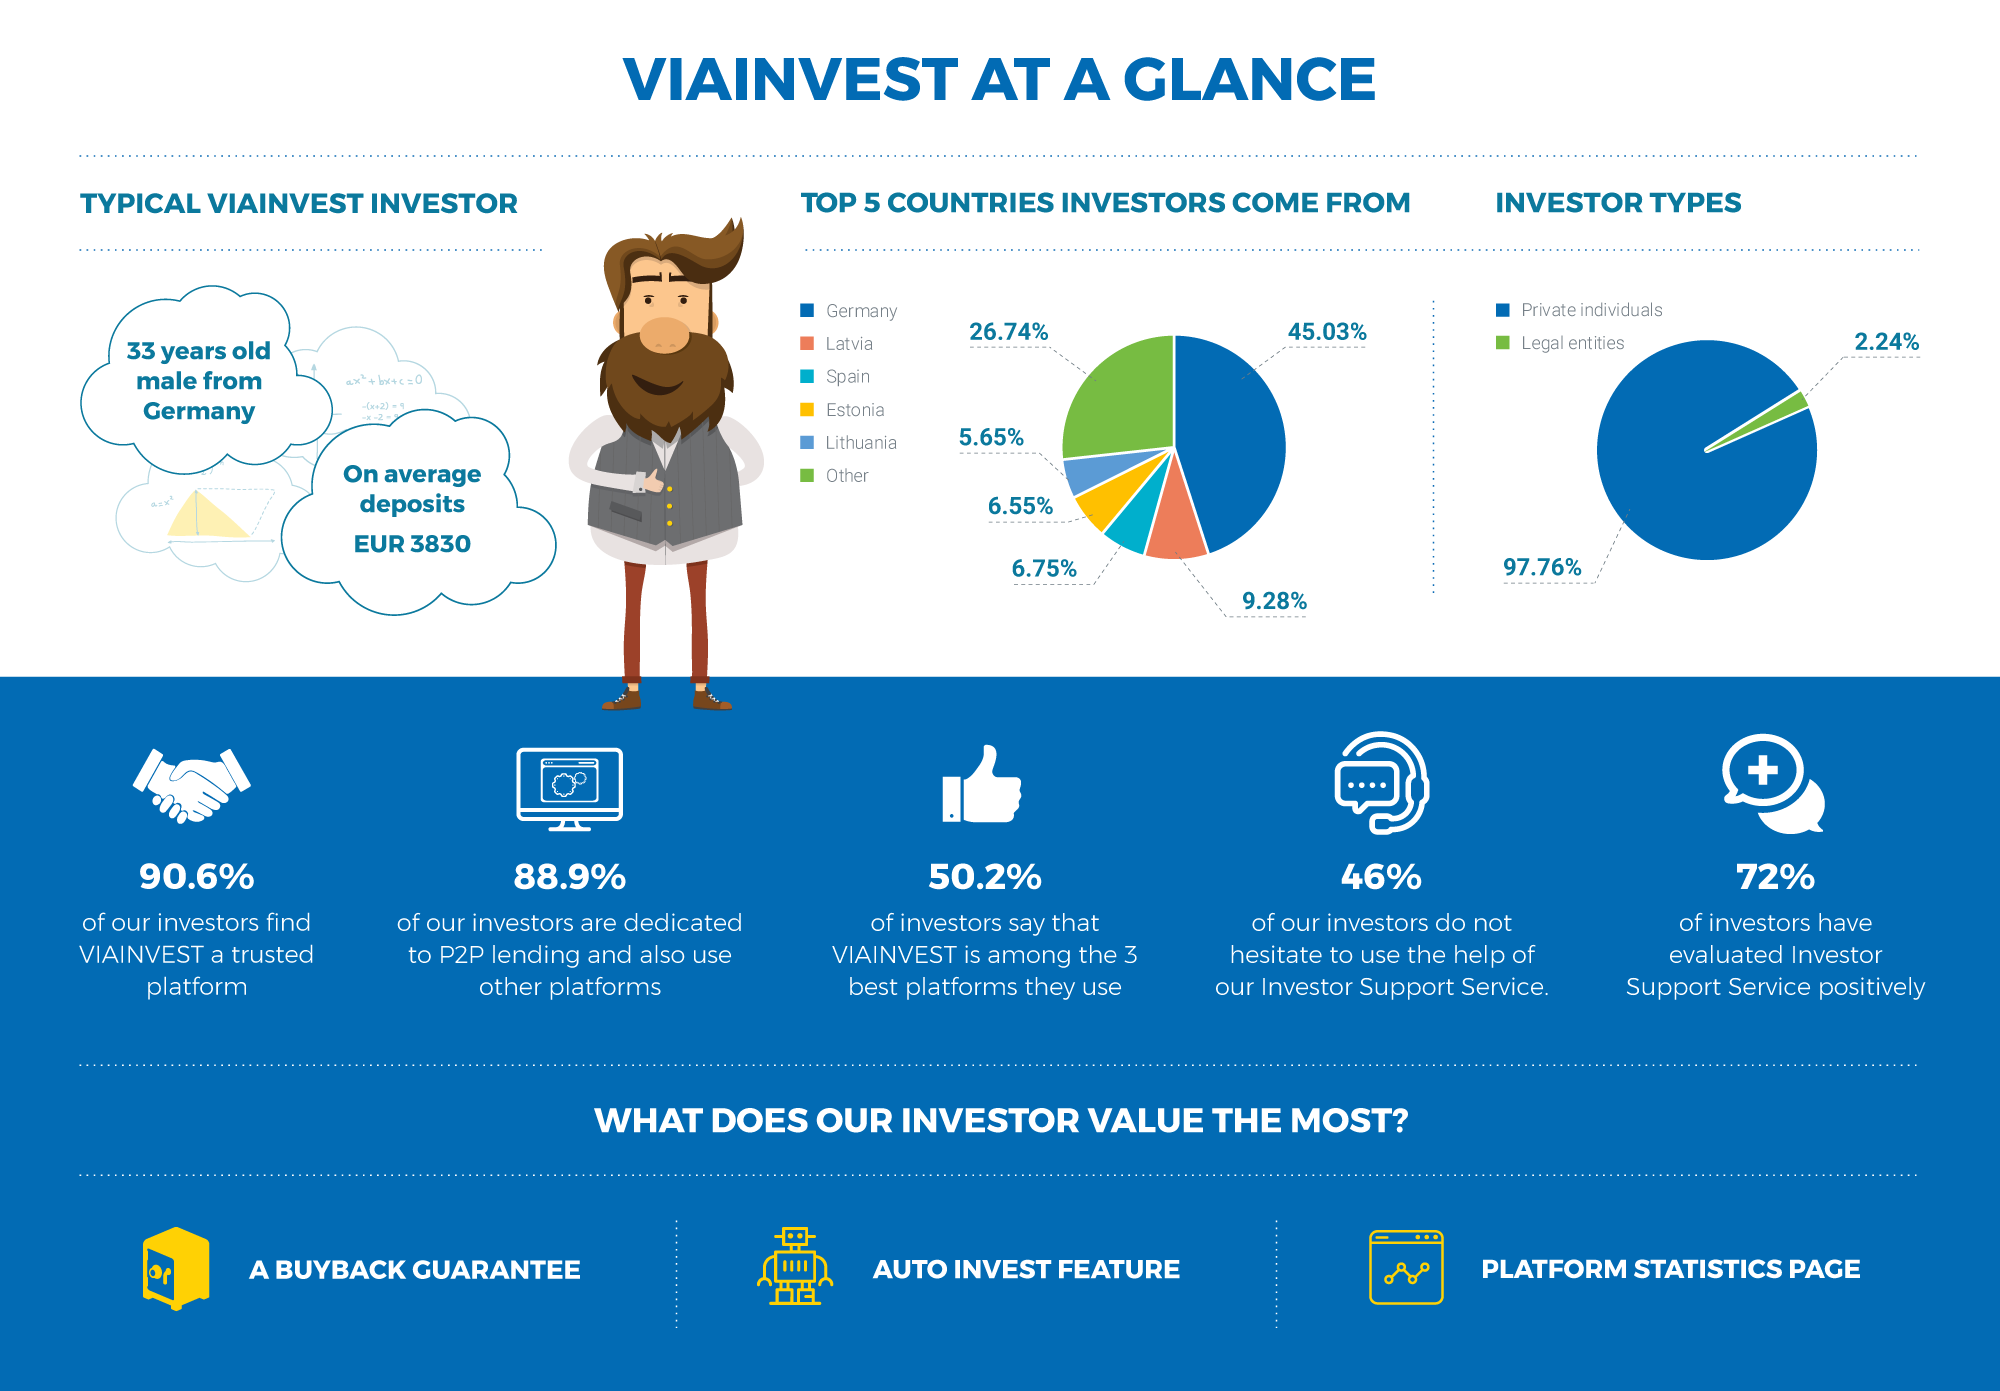 VIAINVEST Investor Survey results